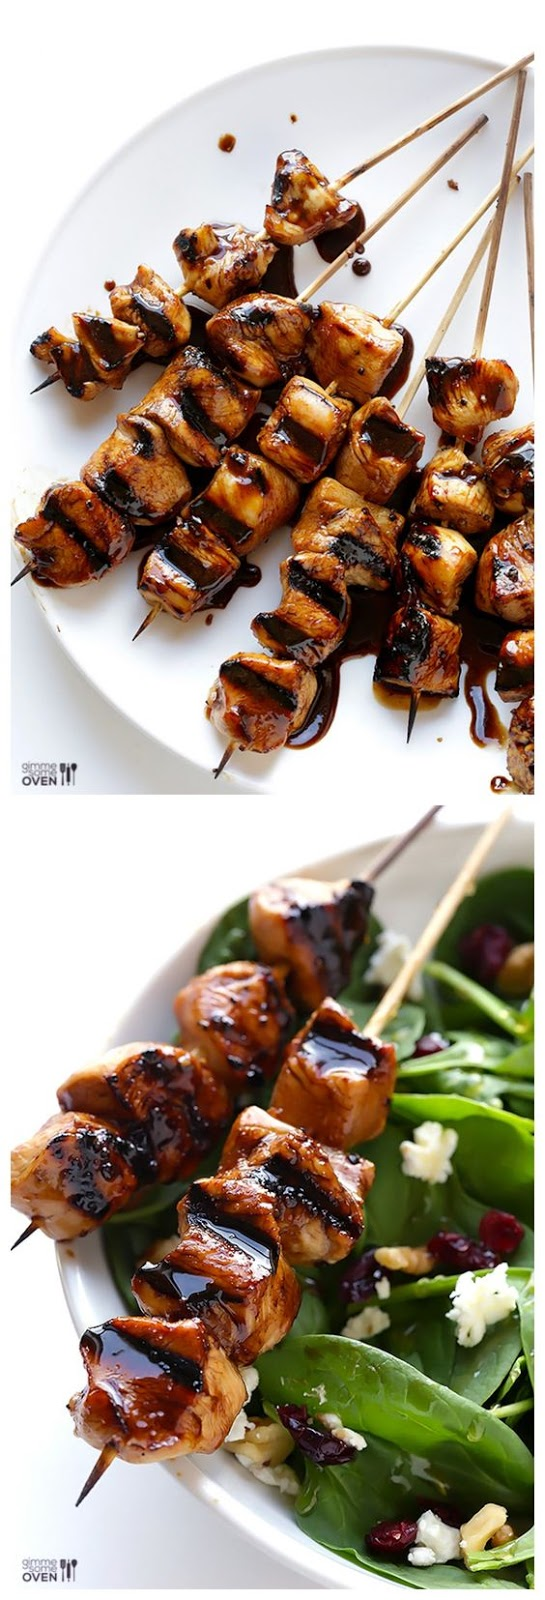 ASY BALSAMIC CHICKEN SKEWERS + BIG GIVEAWAY!